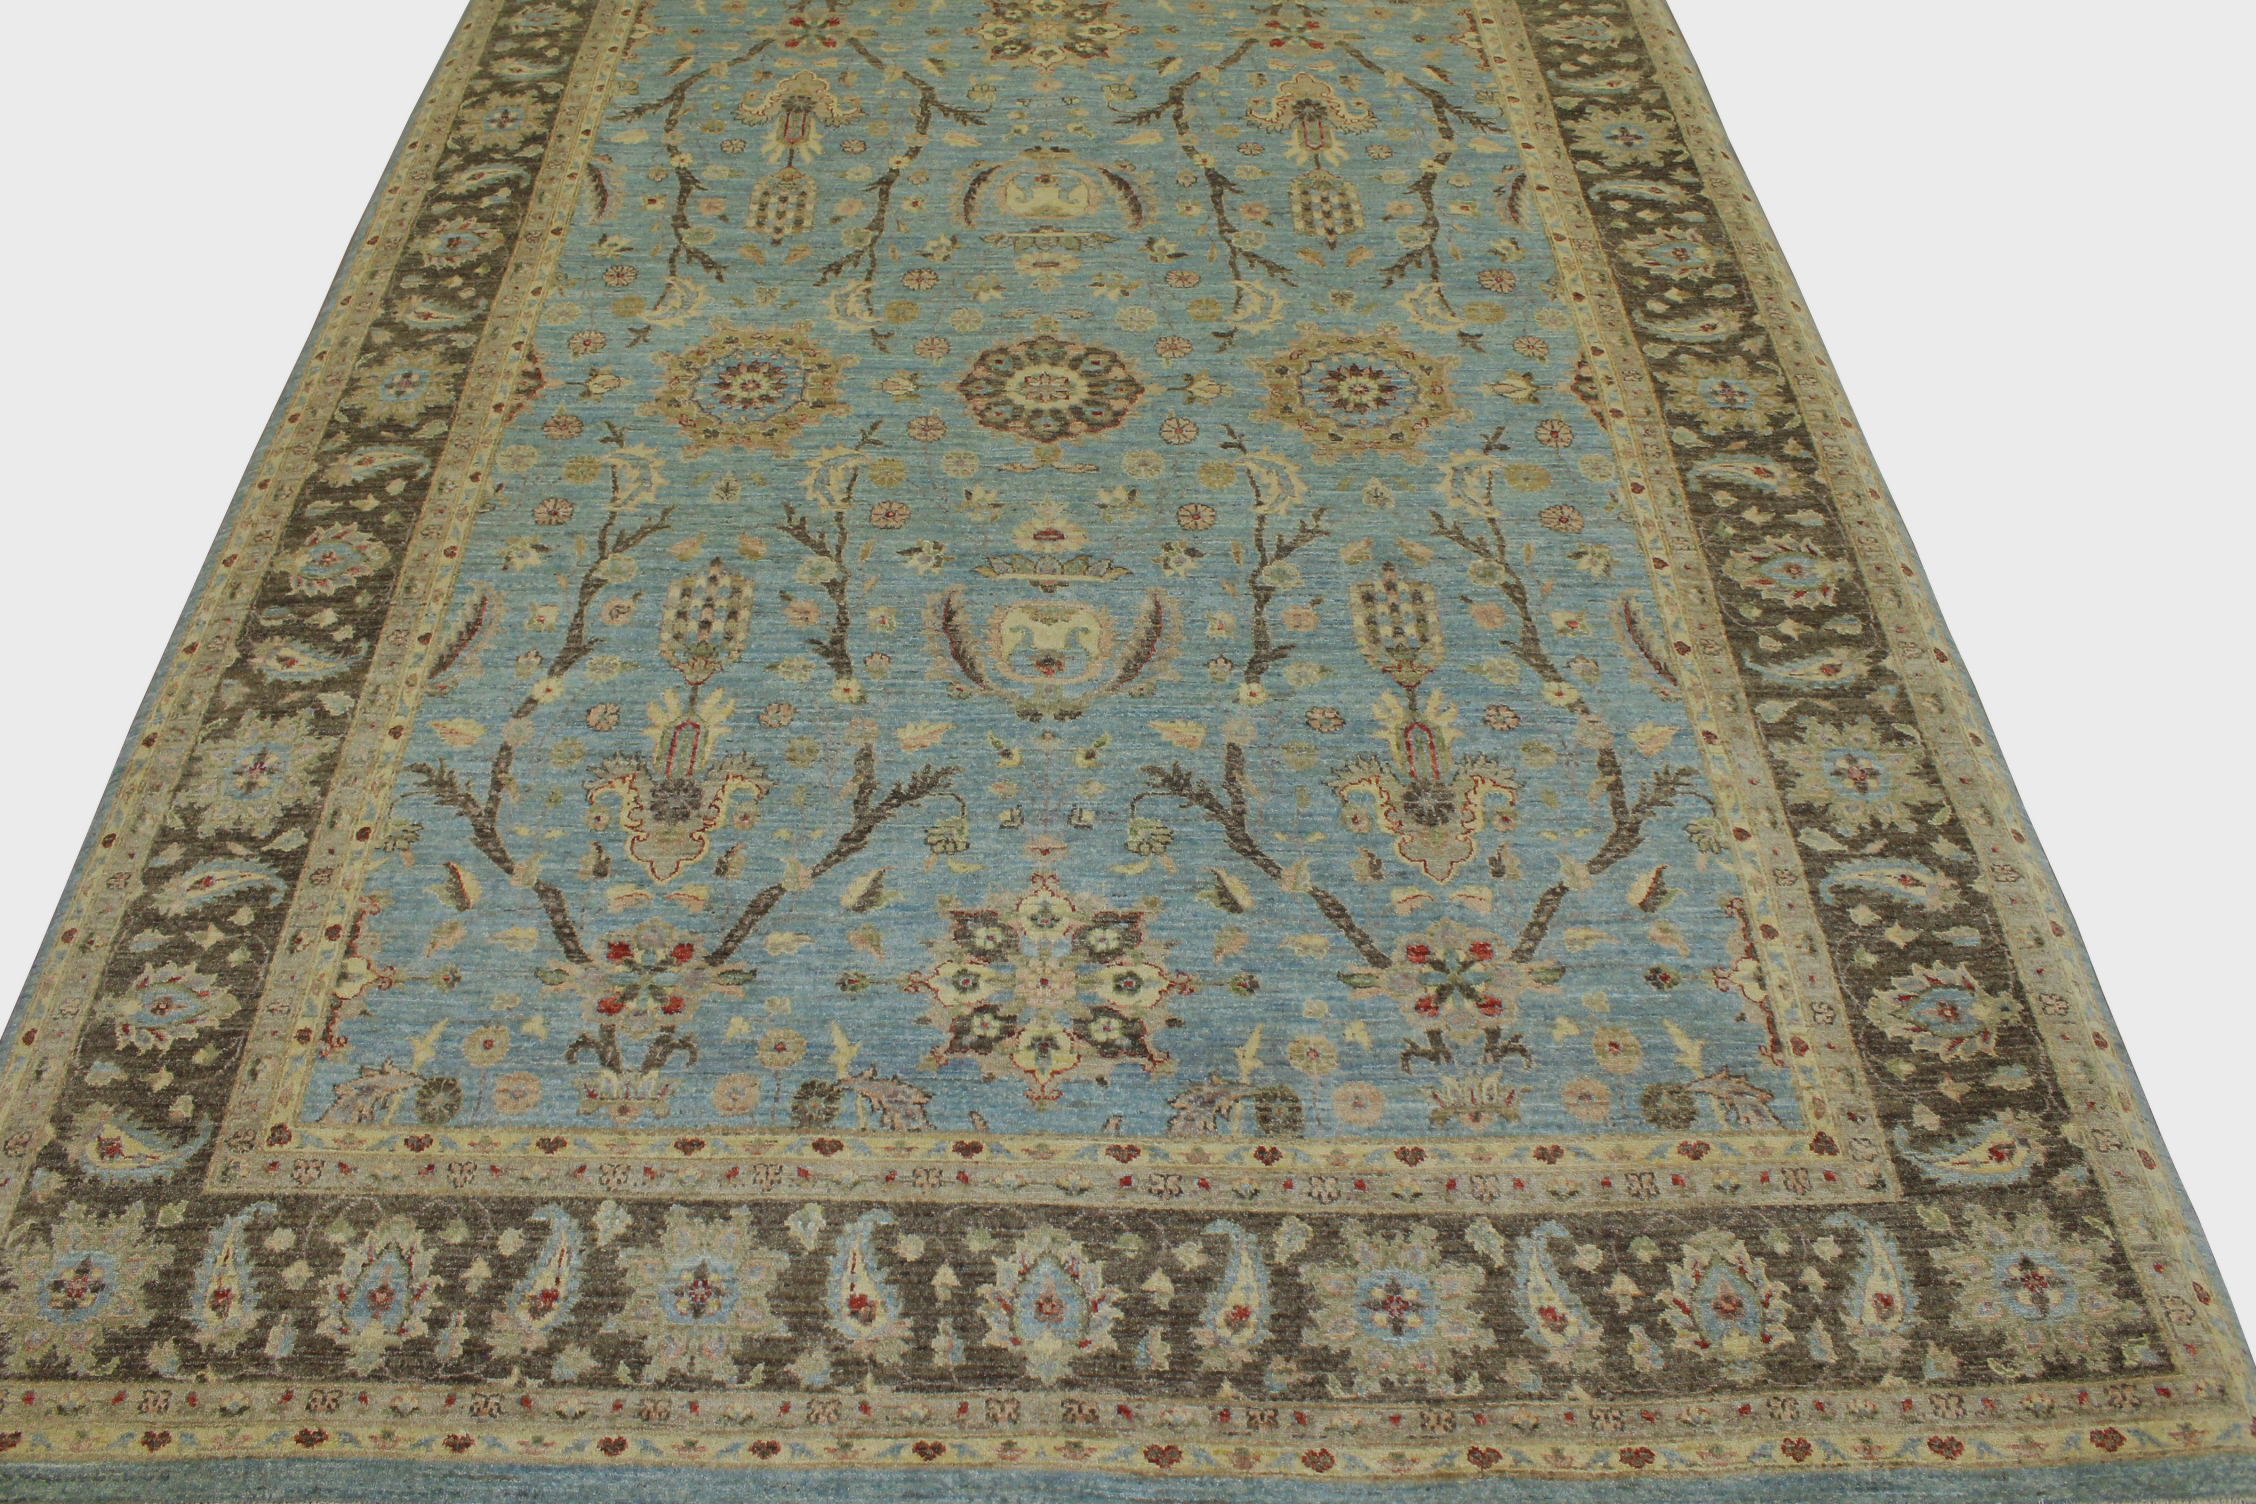 9x12 Peshawar Hand Knotted Wool Area Rug - MR14375